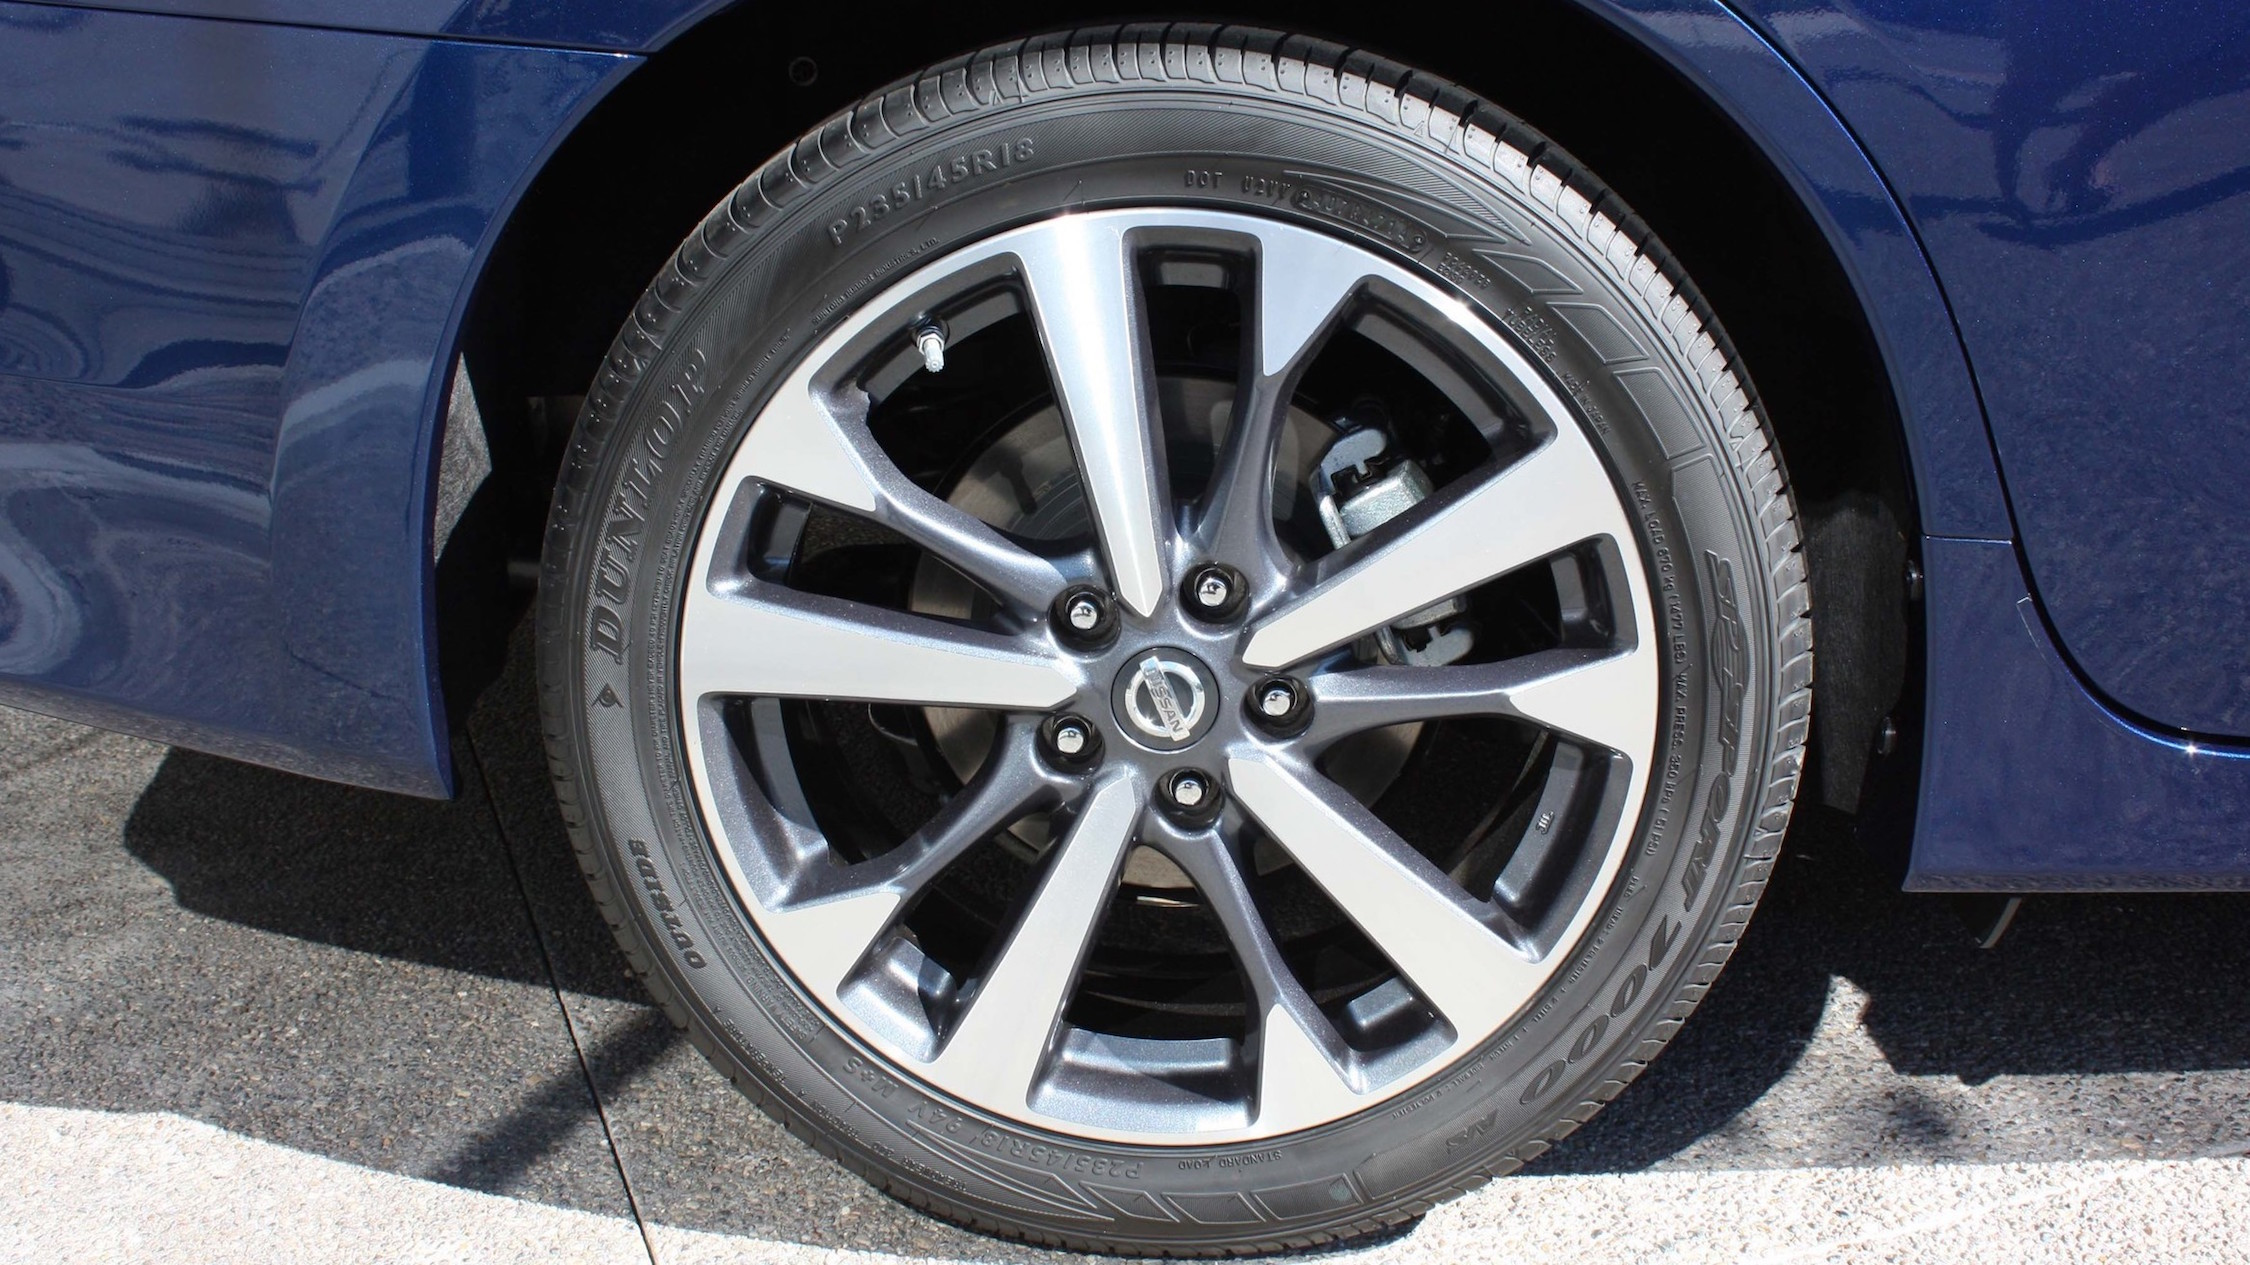 2016 Nissan Altima Exterior Wheel (Photo 19 of 20)